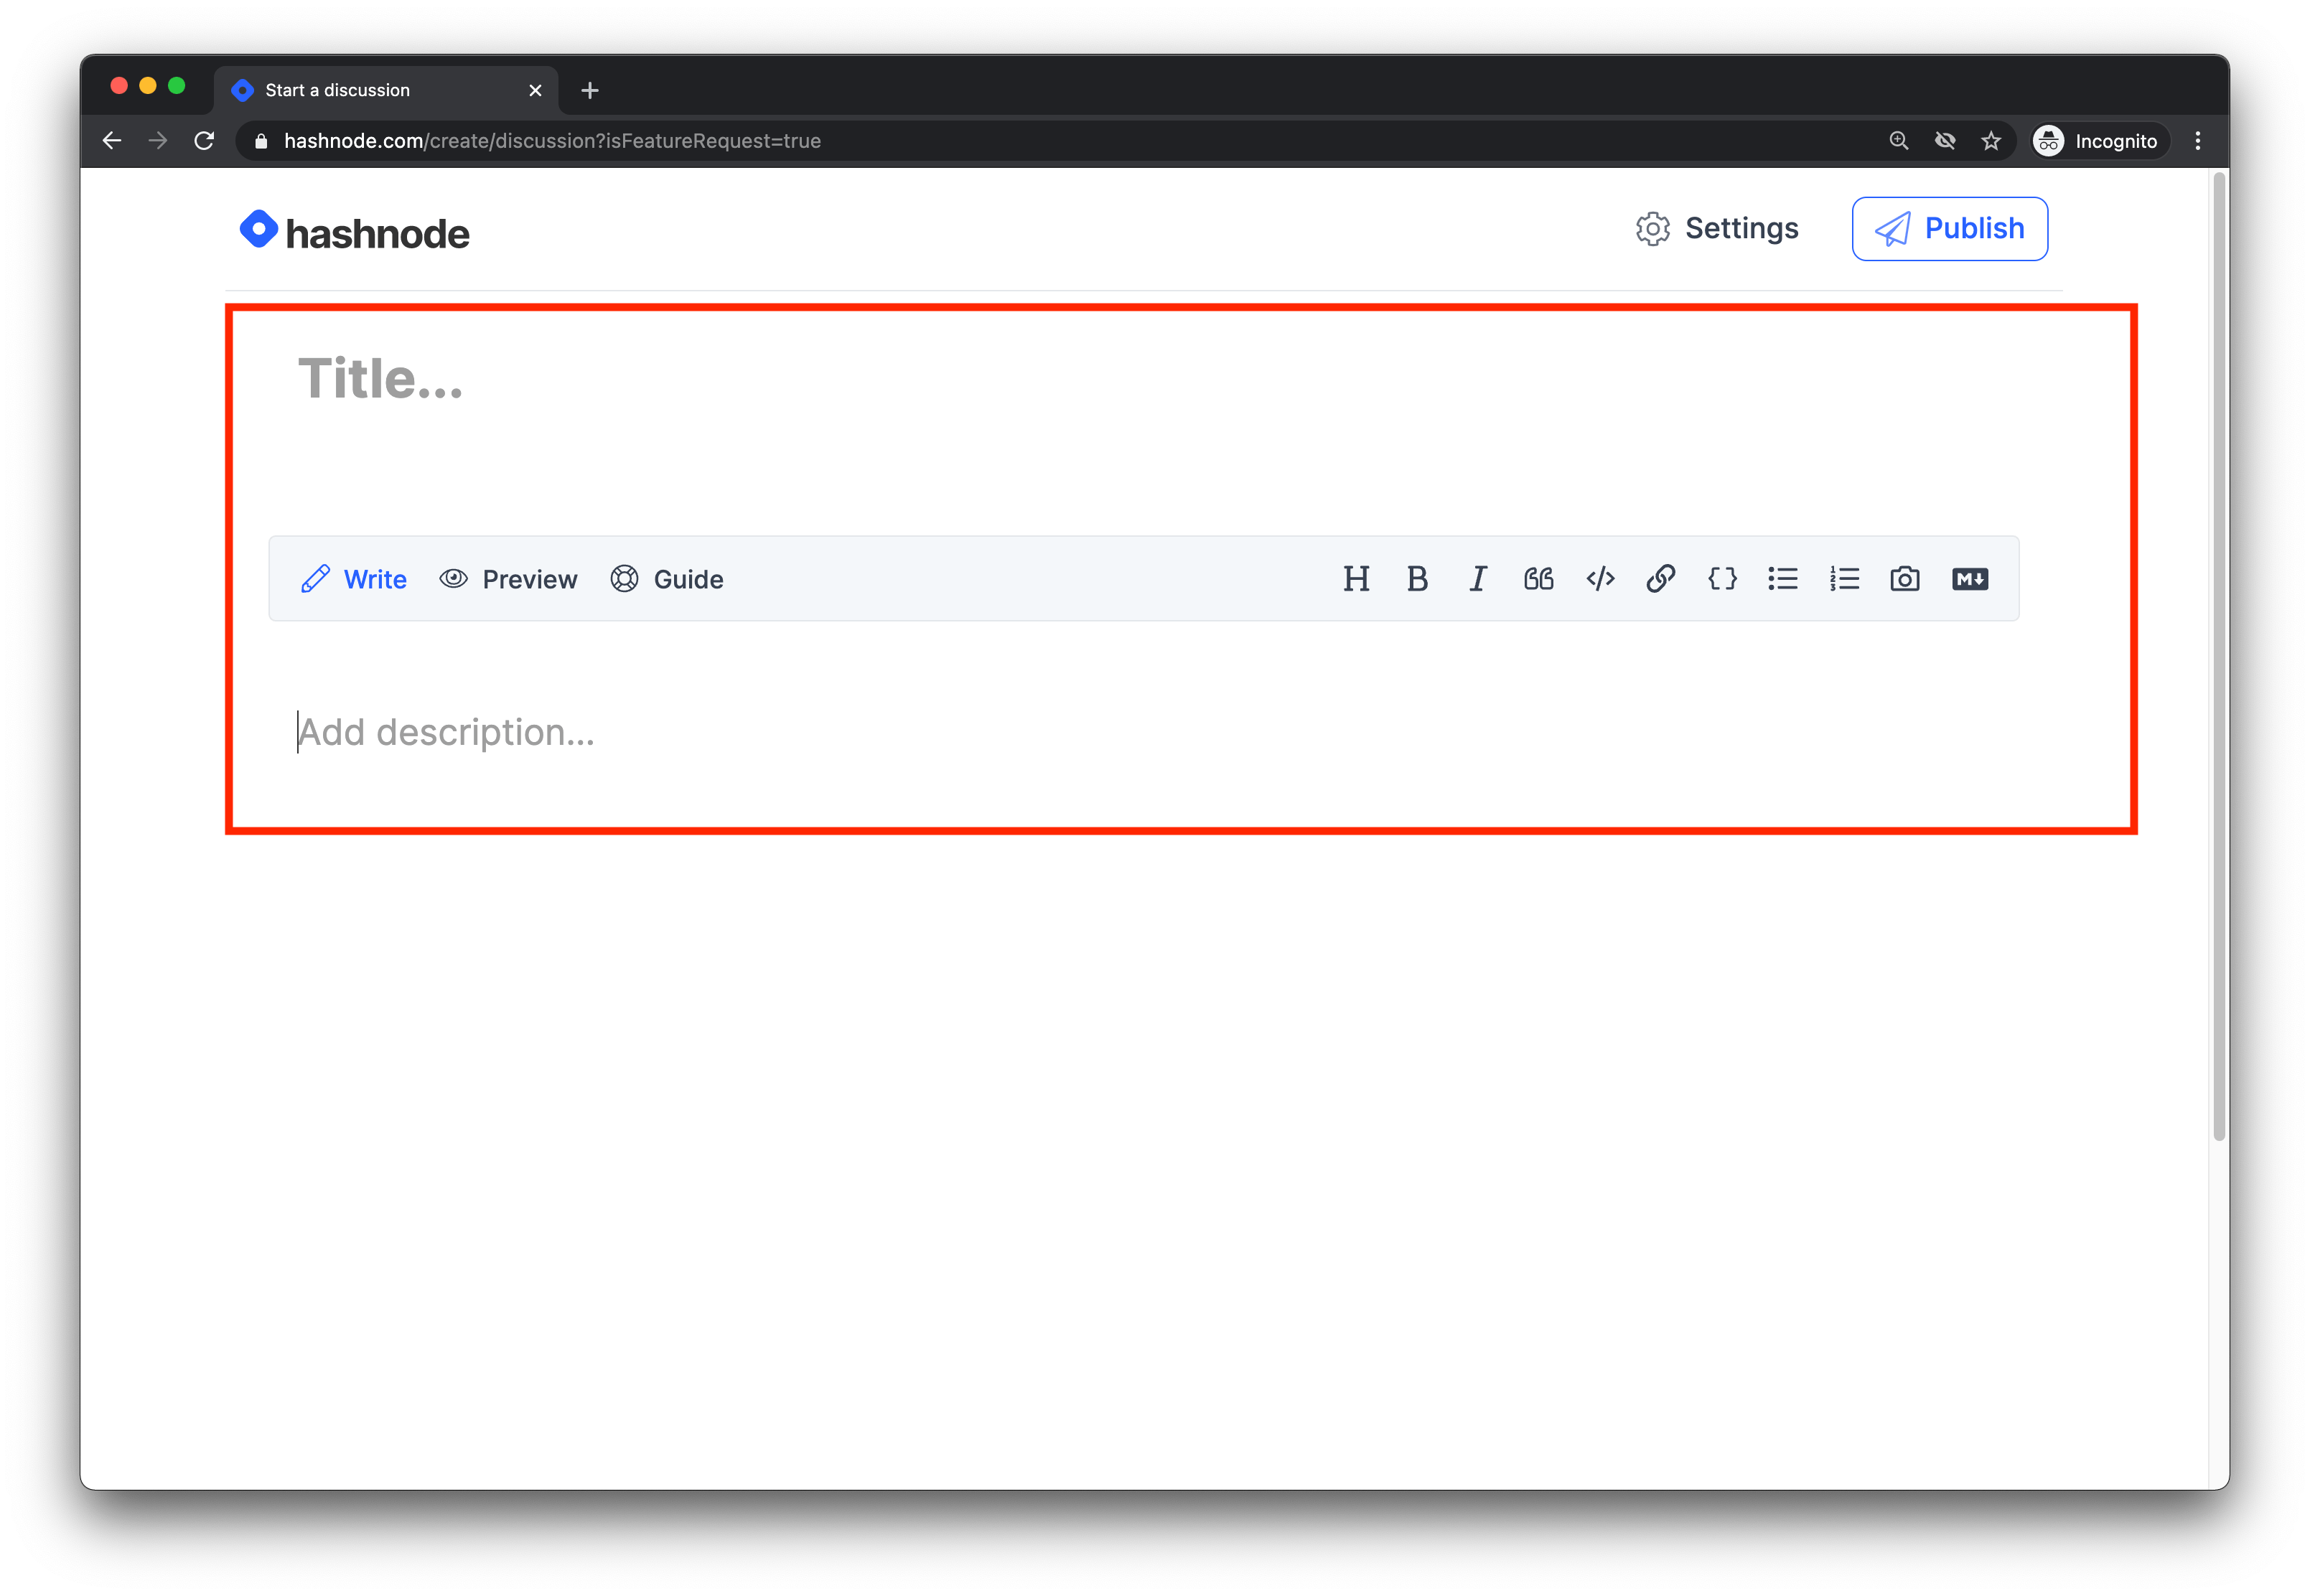 Hashnode Feature Request Page